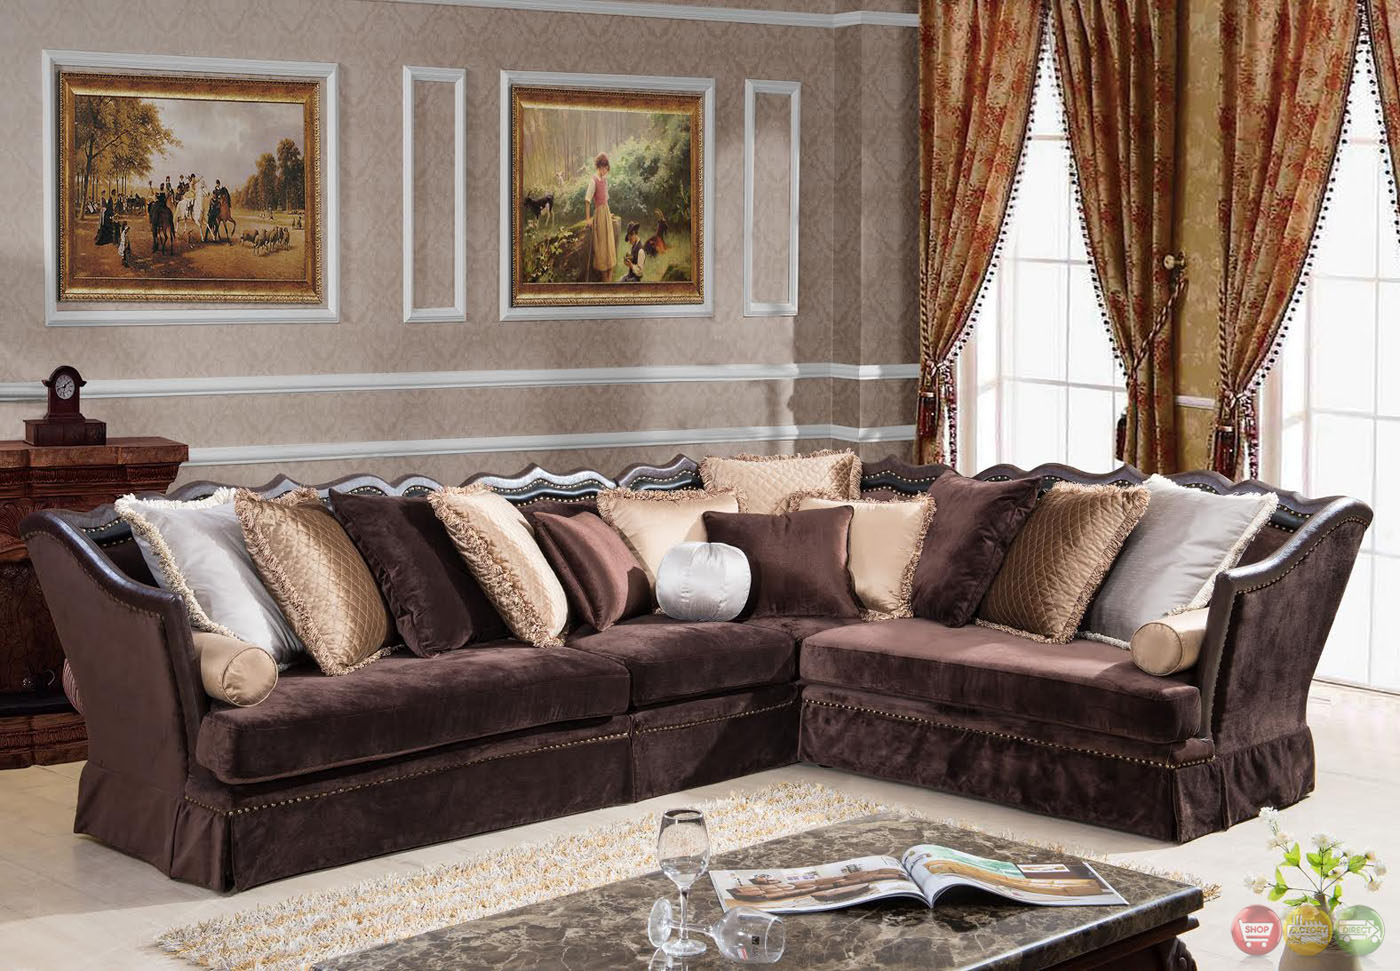 Godiva Formal Antique Style Traditional Living Room Furniture